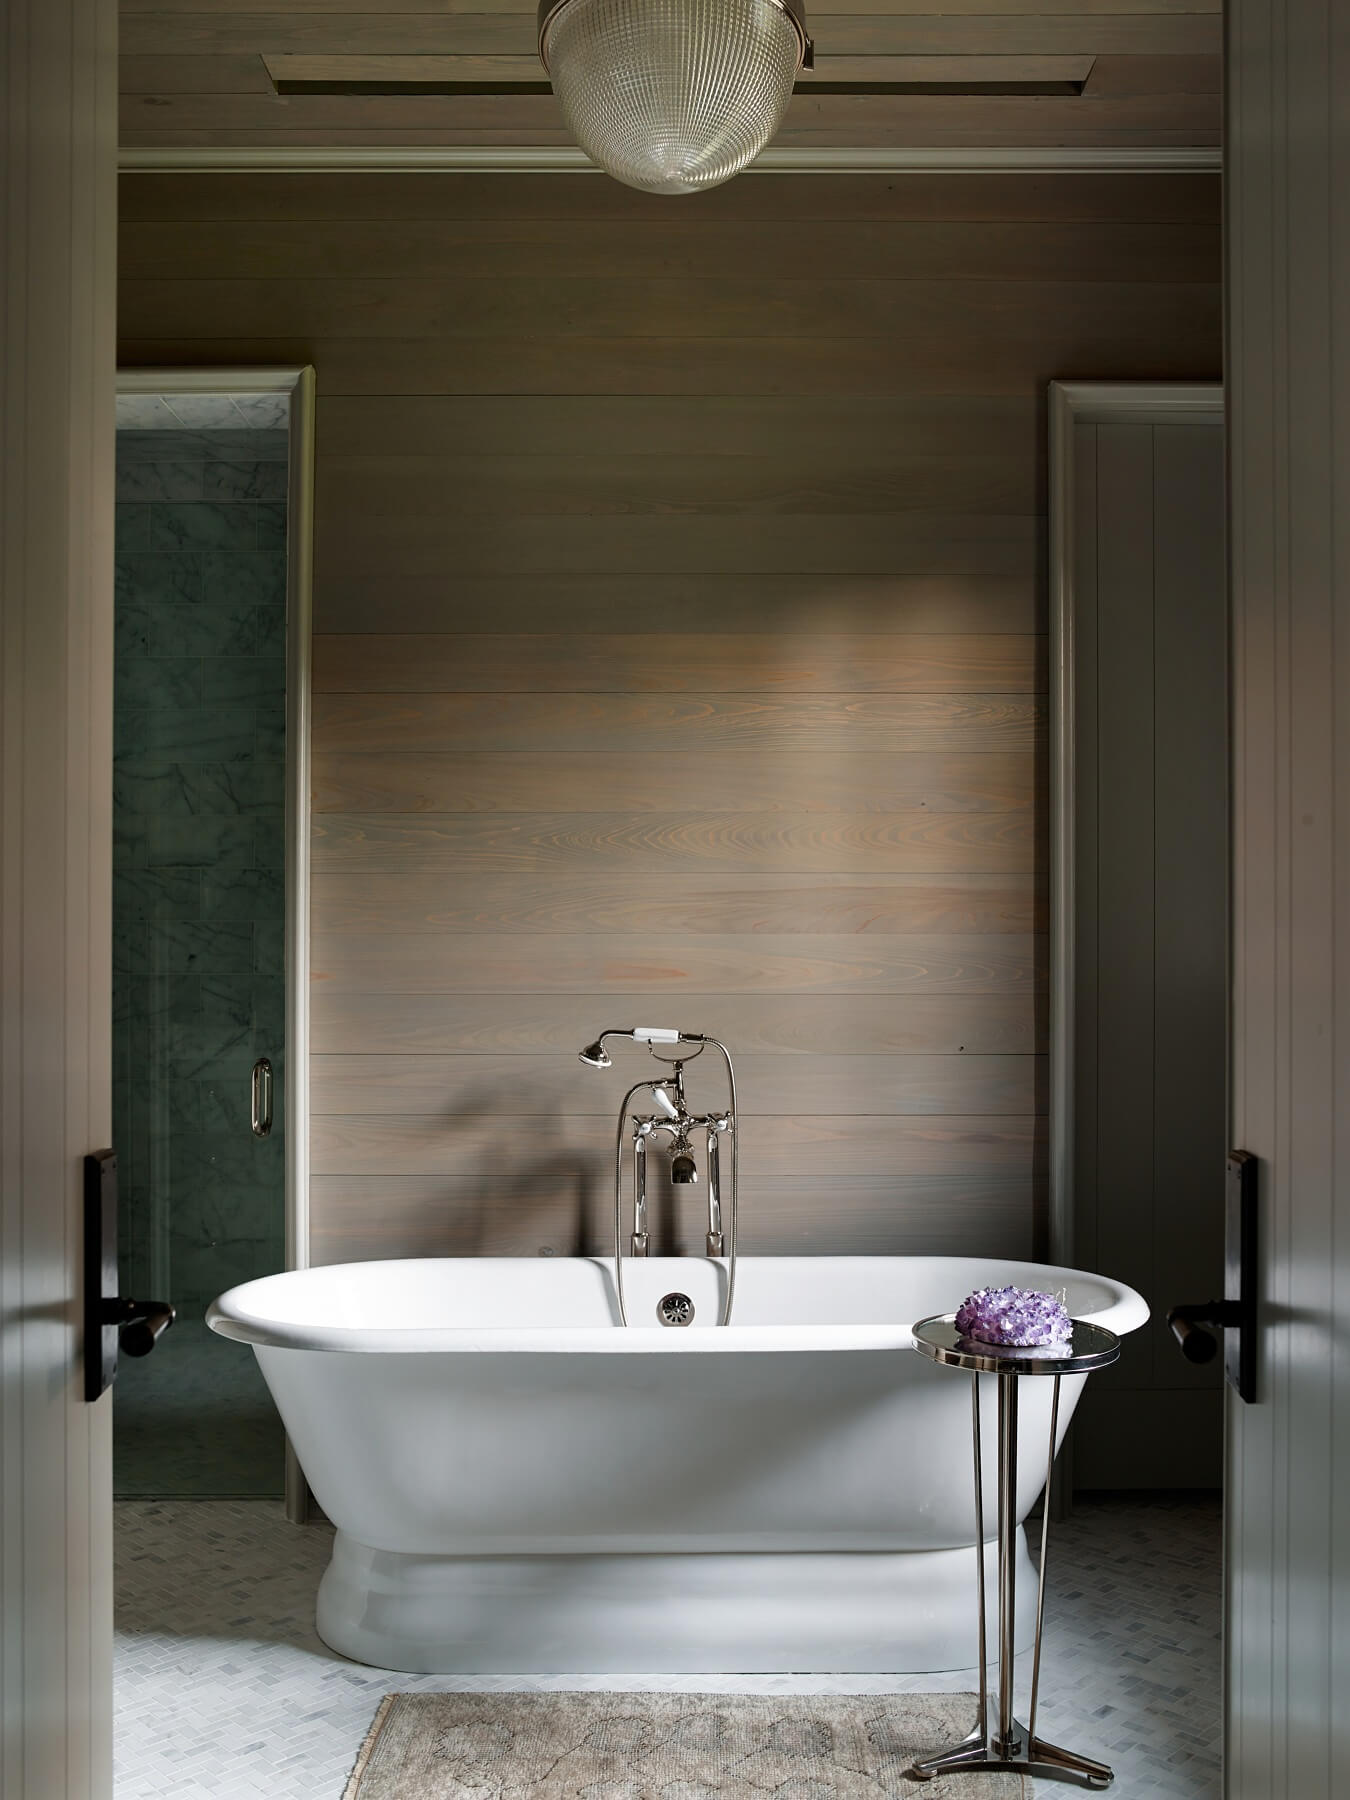 The beautiful bath tub is the centerpiece of this bathroom.